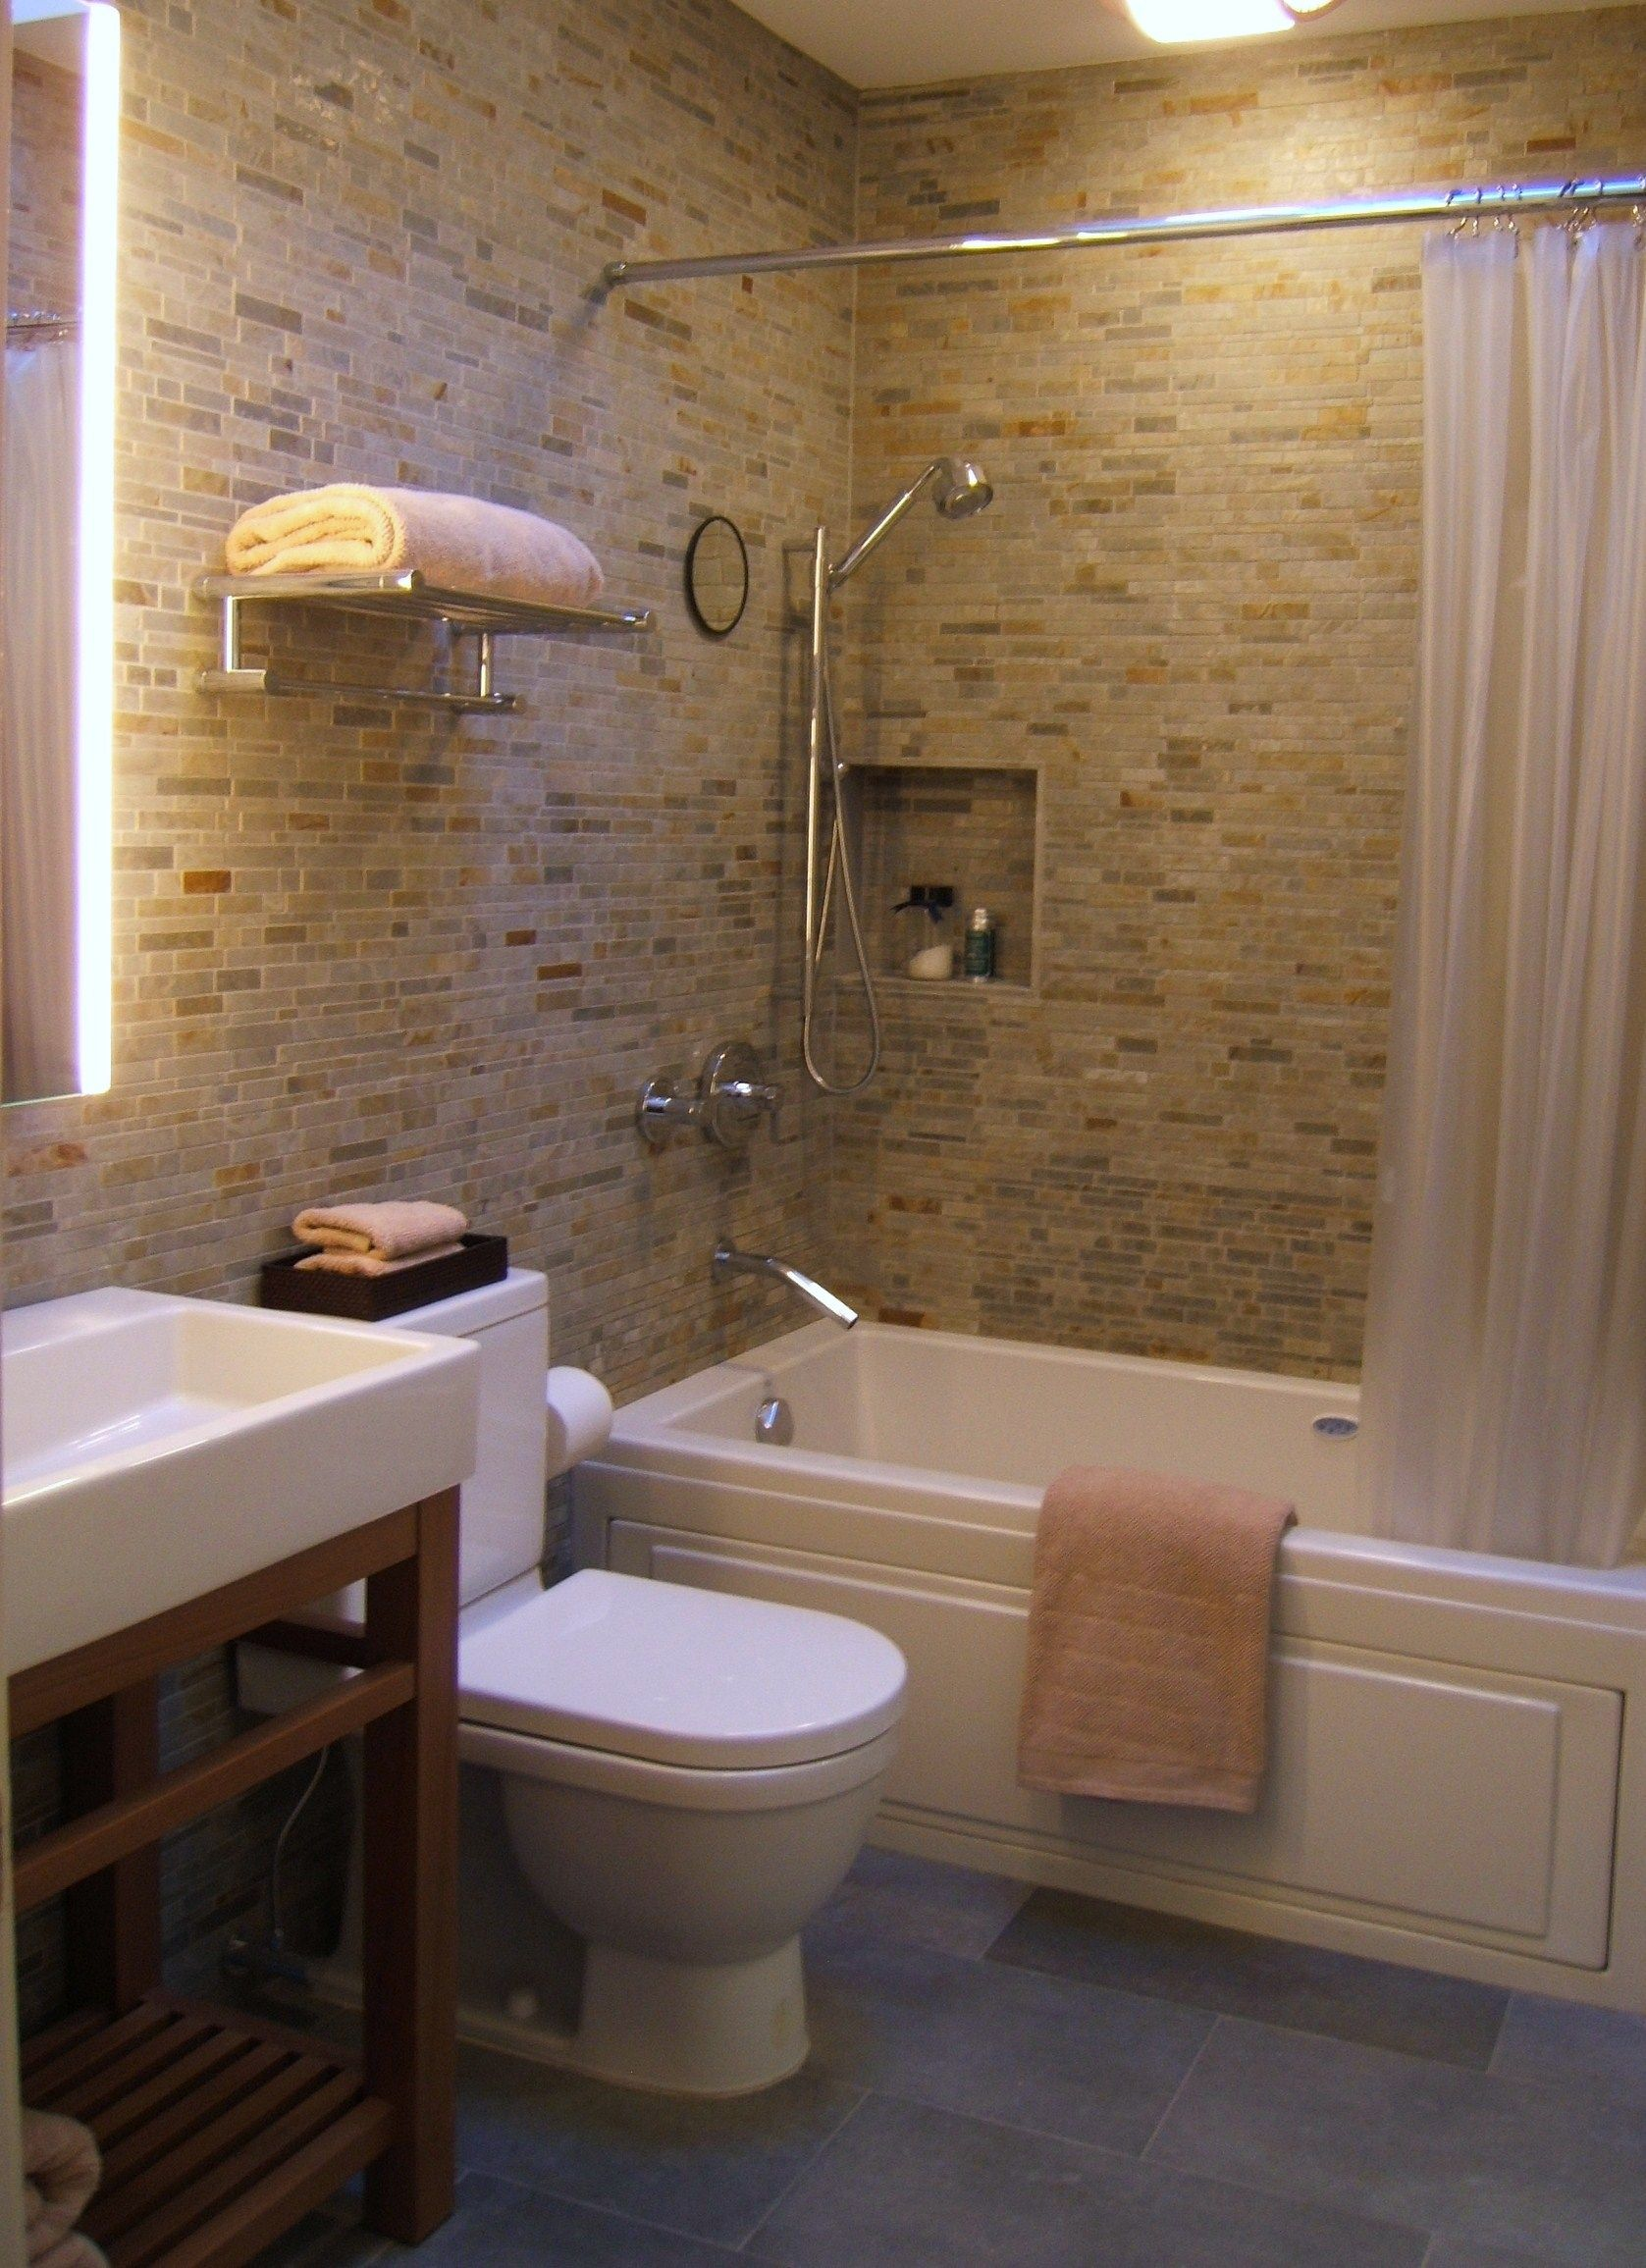 Small bathroom designs south africa small bath for Small bath remodel ideas